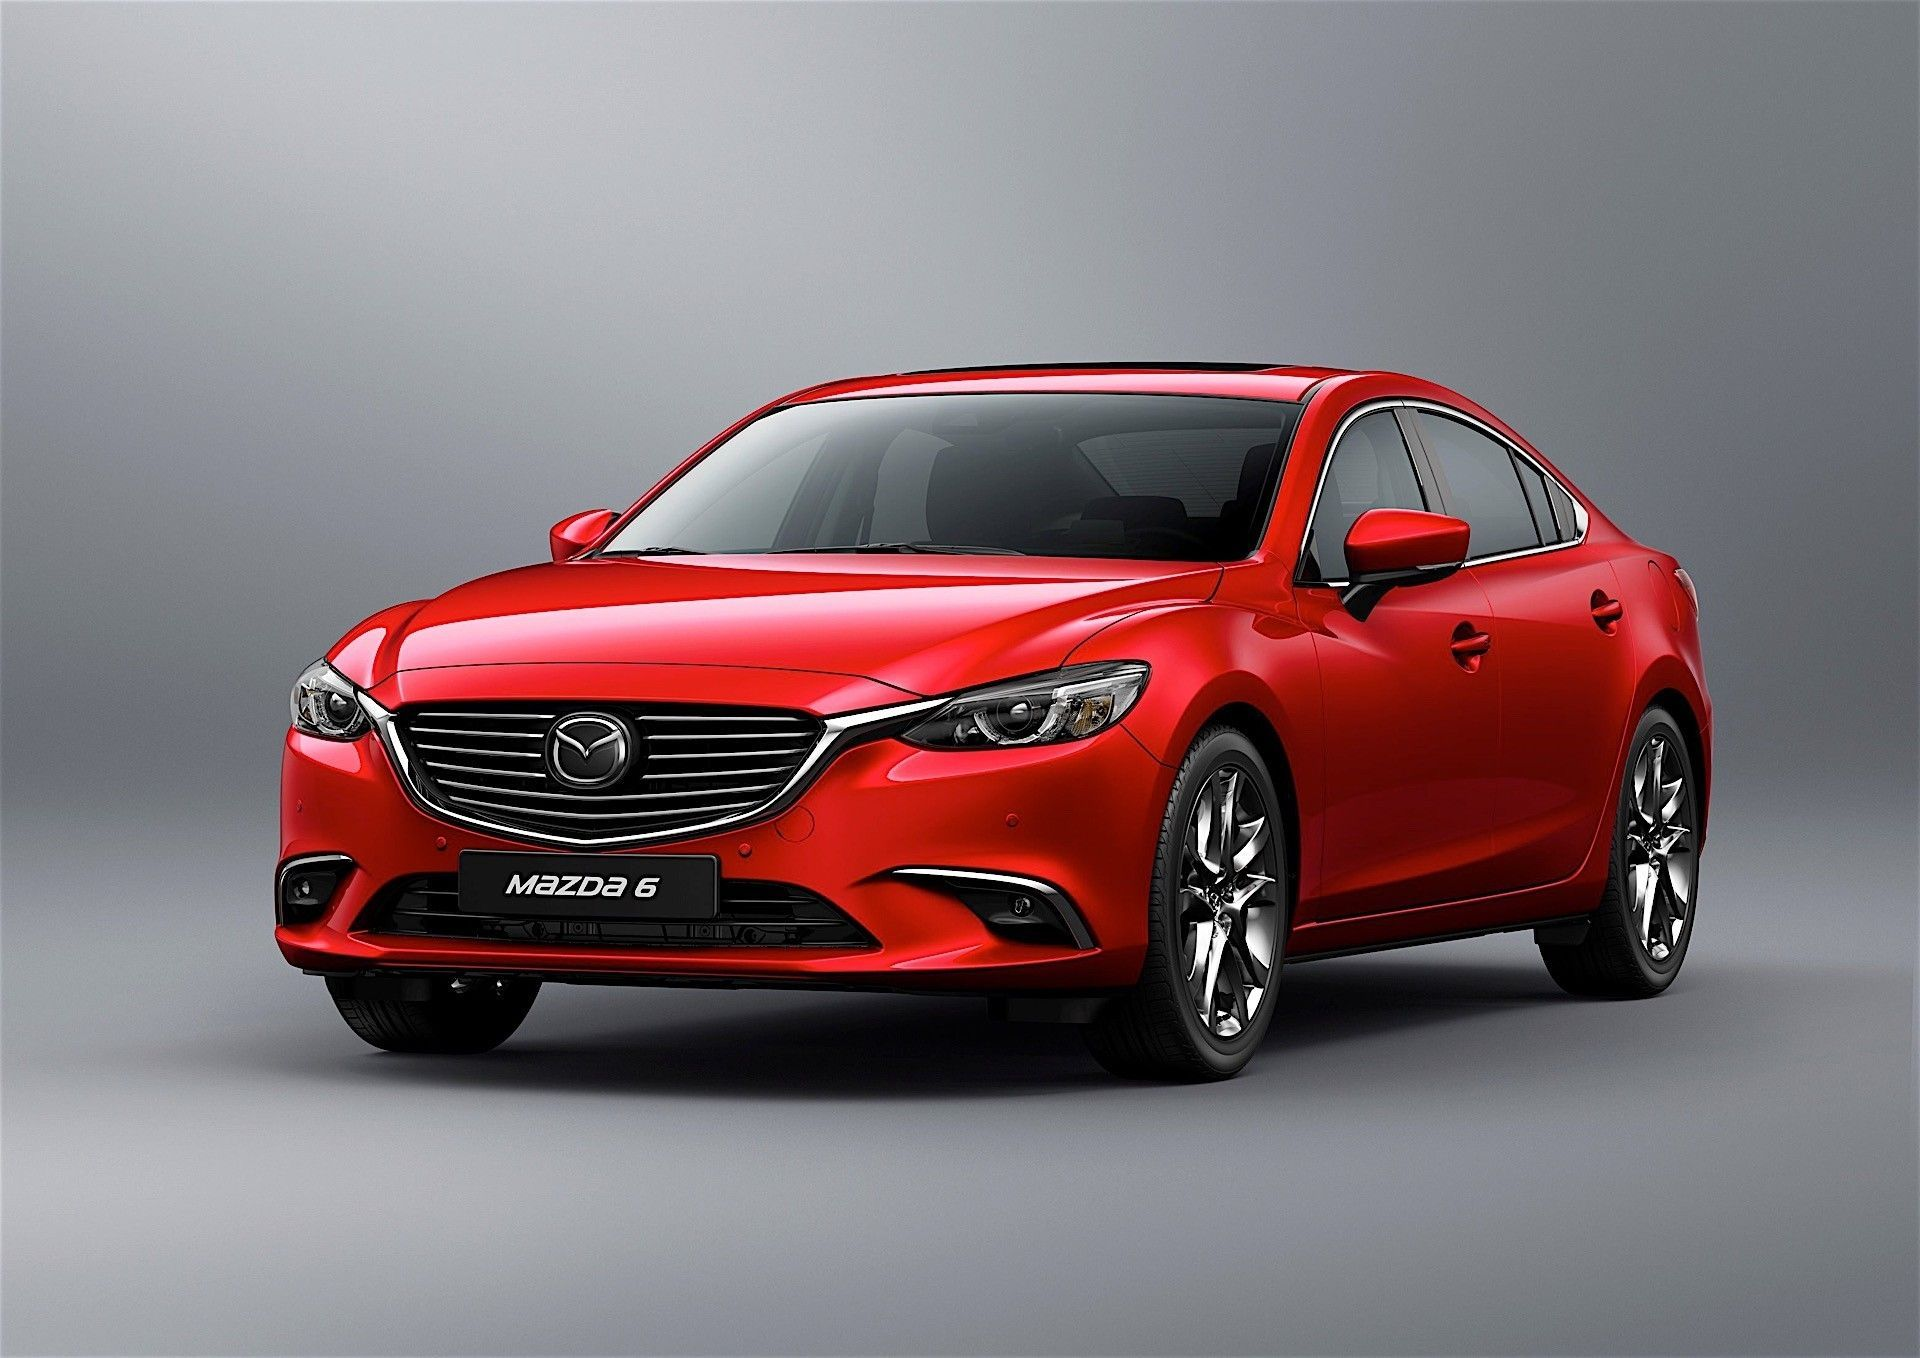 New 2020 Mazda 6s Review And Specs Cars Review 2019 Car